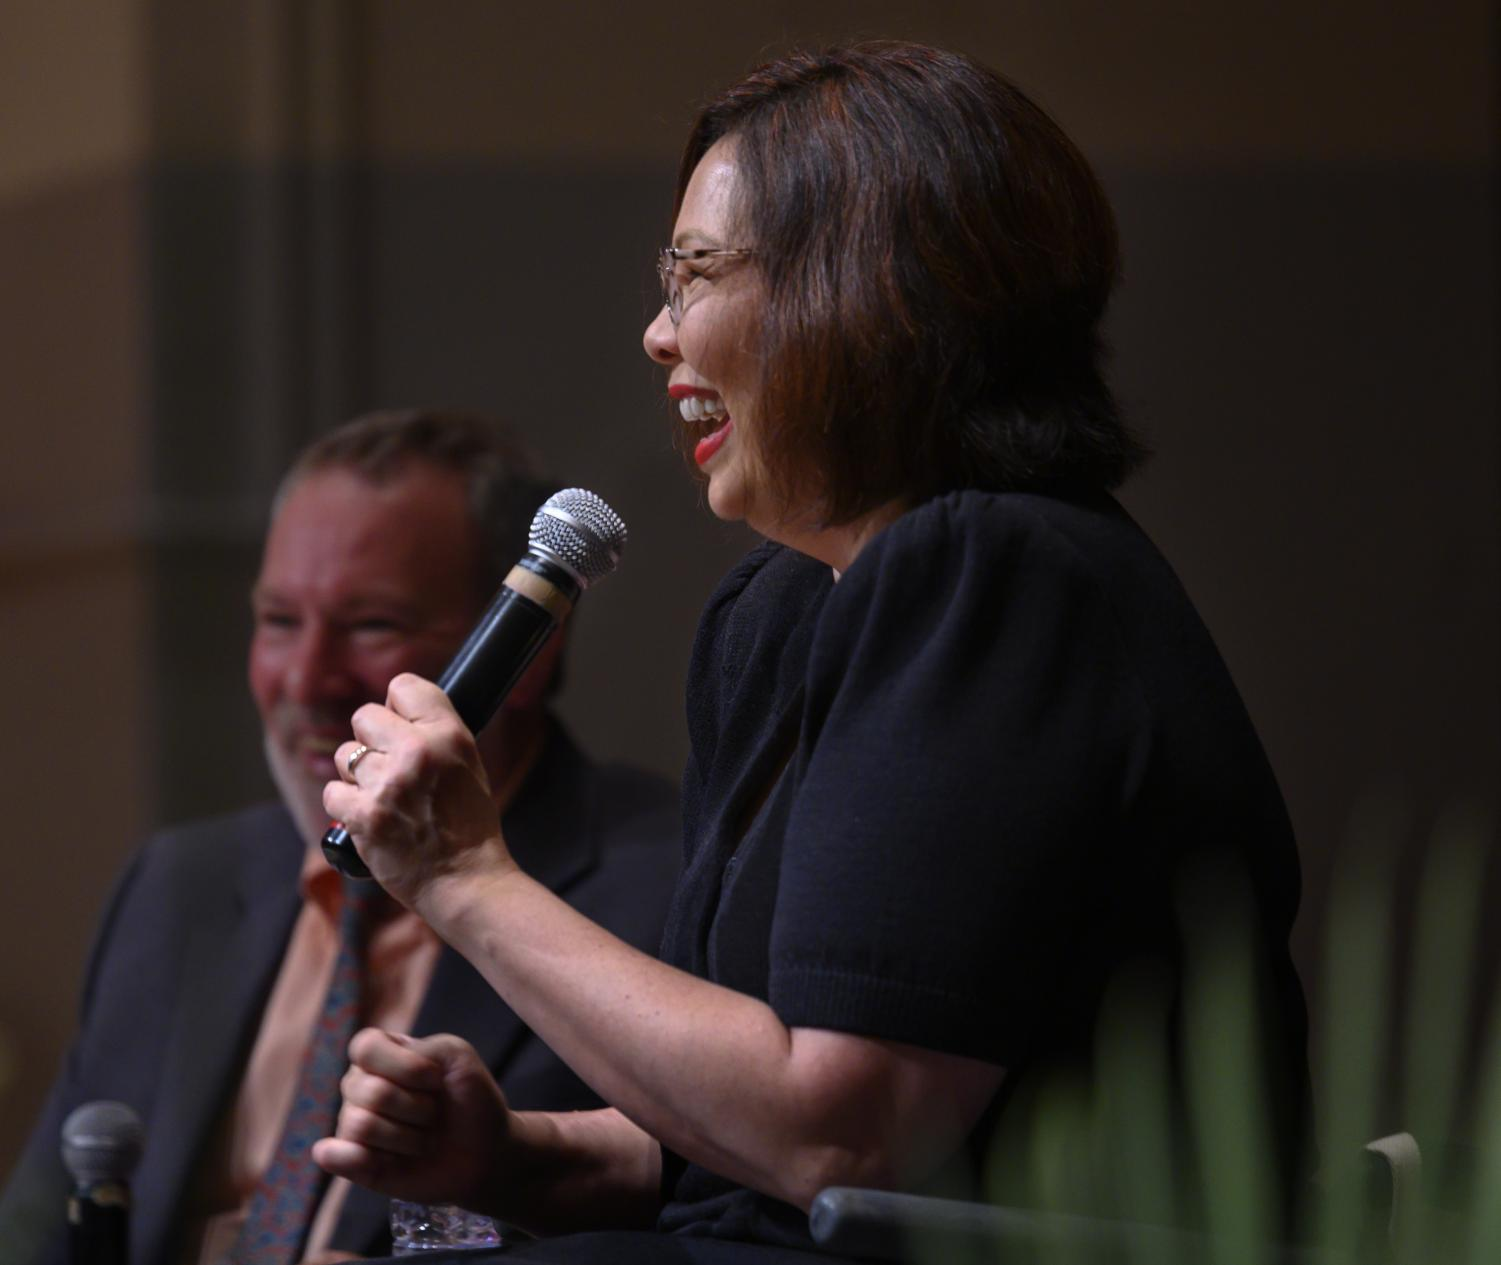 Senator Tammy Duckworth reacts with the community members on Friday, July 12, 2019 inside the SIU Student Center.